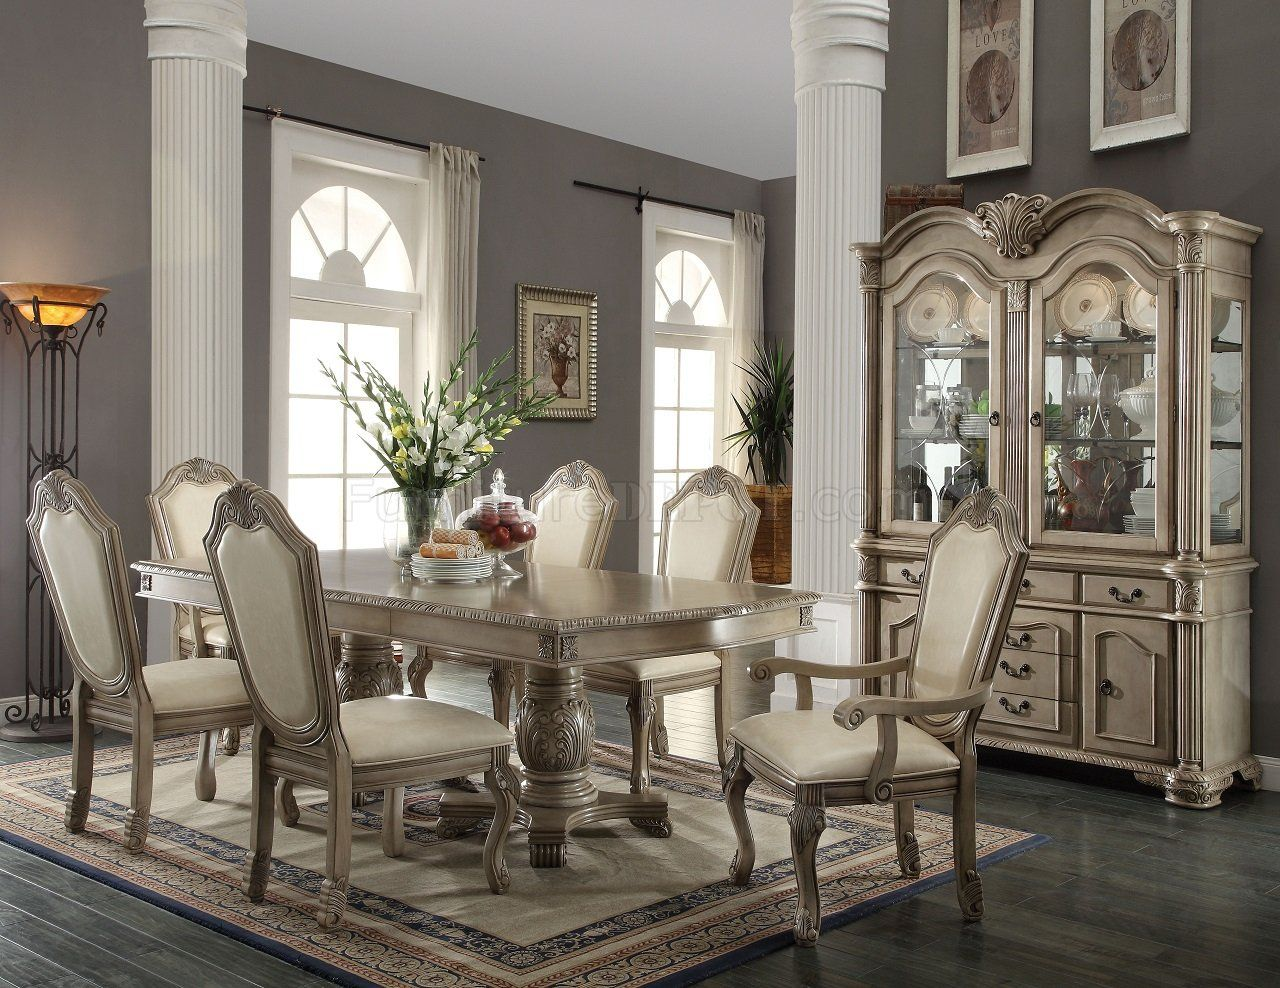 White Formal Dining Room Sets formal dining room sets – reasons why formal tables offer more